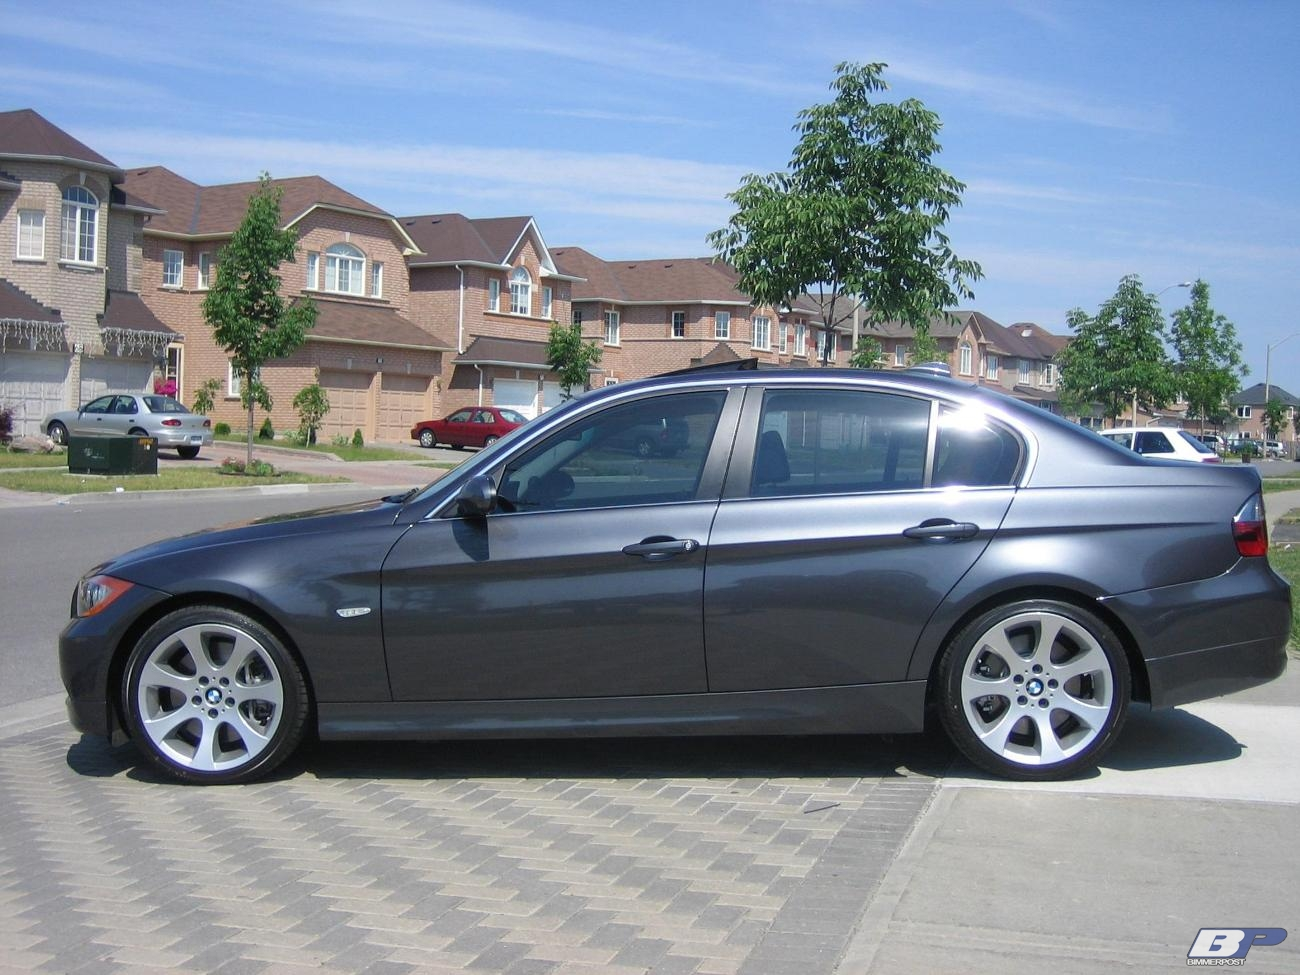 ct335i 39 s 2007 bmw 335i sedan bimmerpost garage. Black Bedroom Furniture Sets. Home Design Ideas